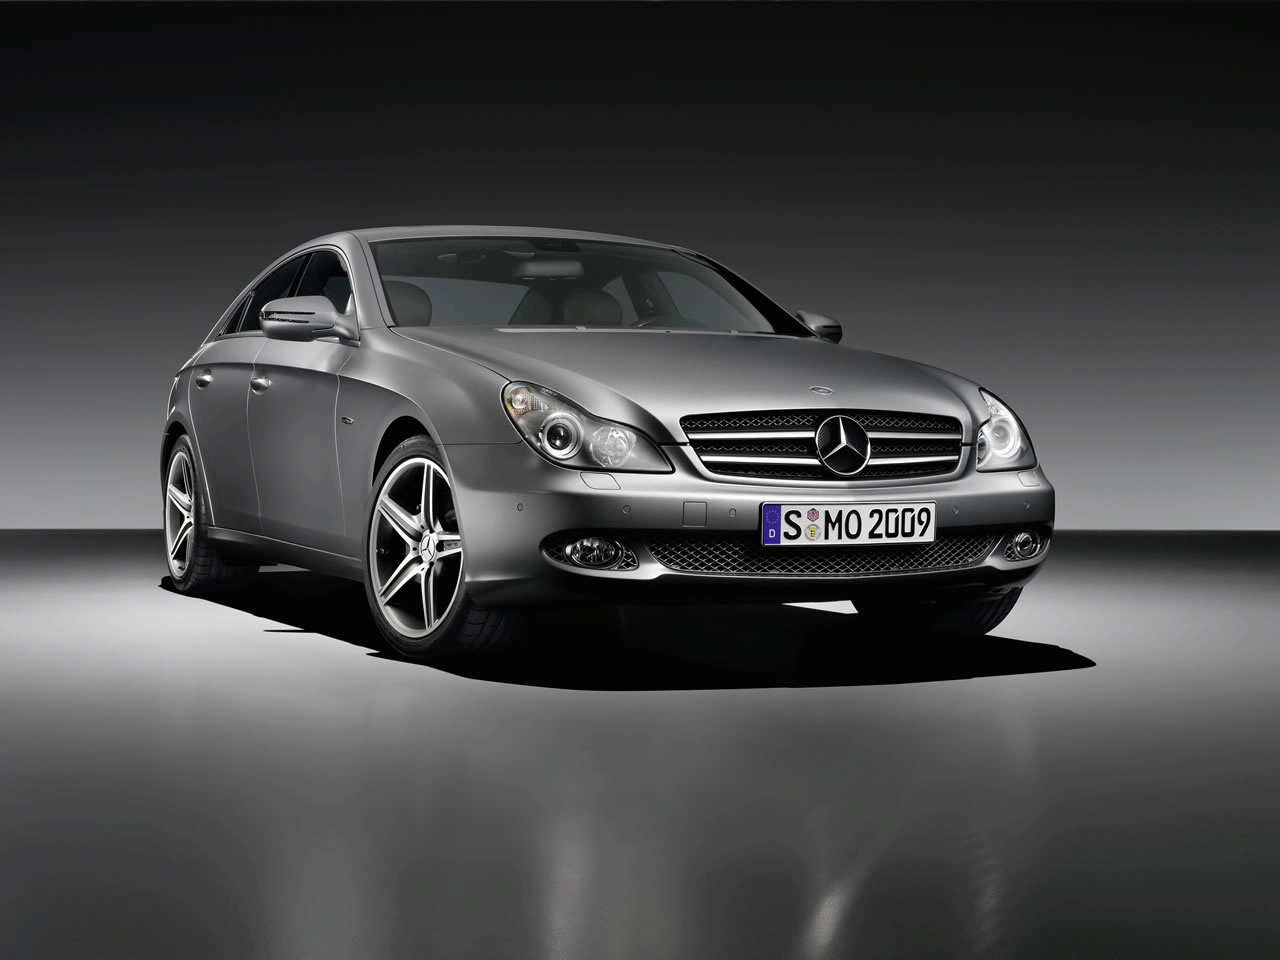 mercedes unveils 2009 cls grand edition (details + photo) | it's